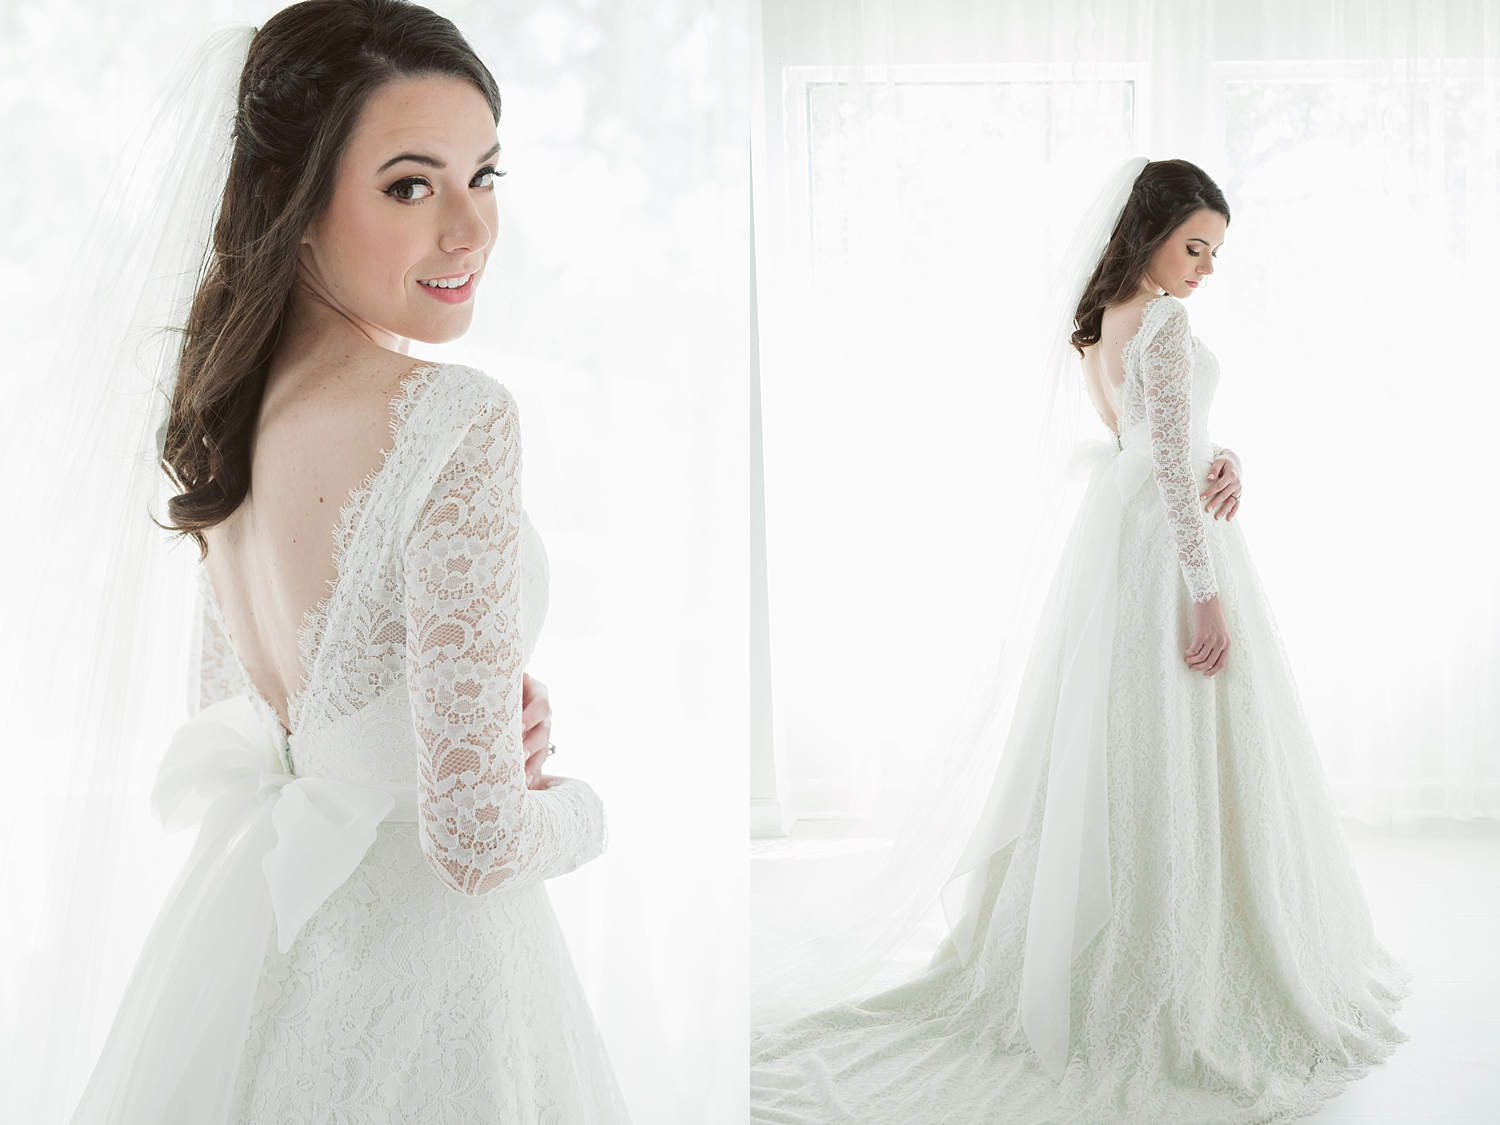 tampa_bridal_session_0009.jpg